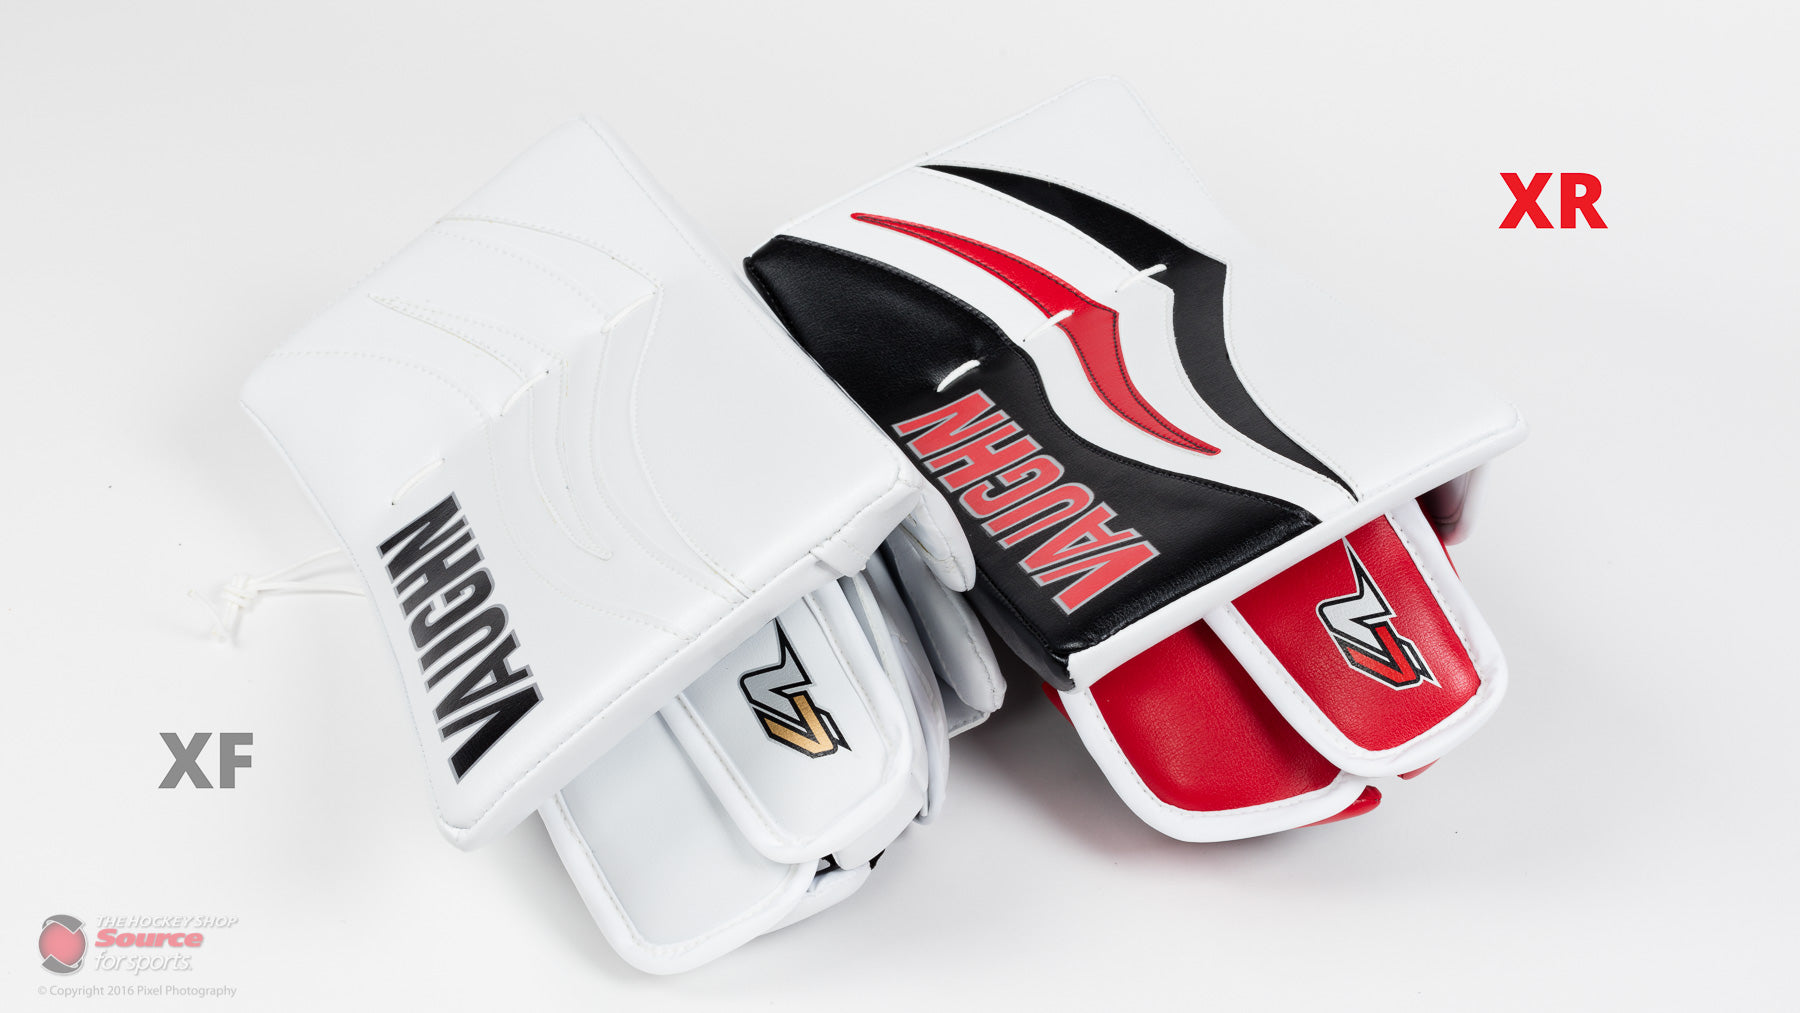 Vaughn V7 XR and XF